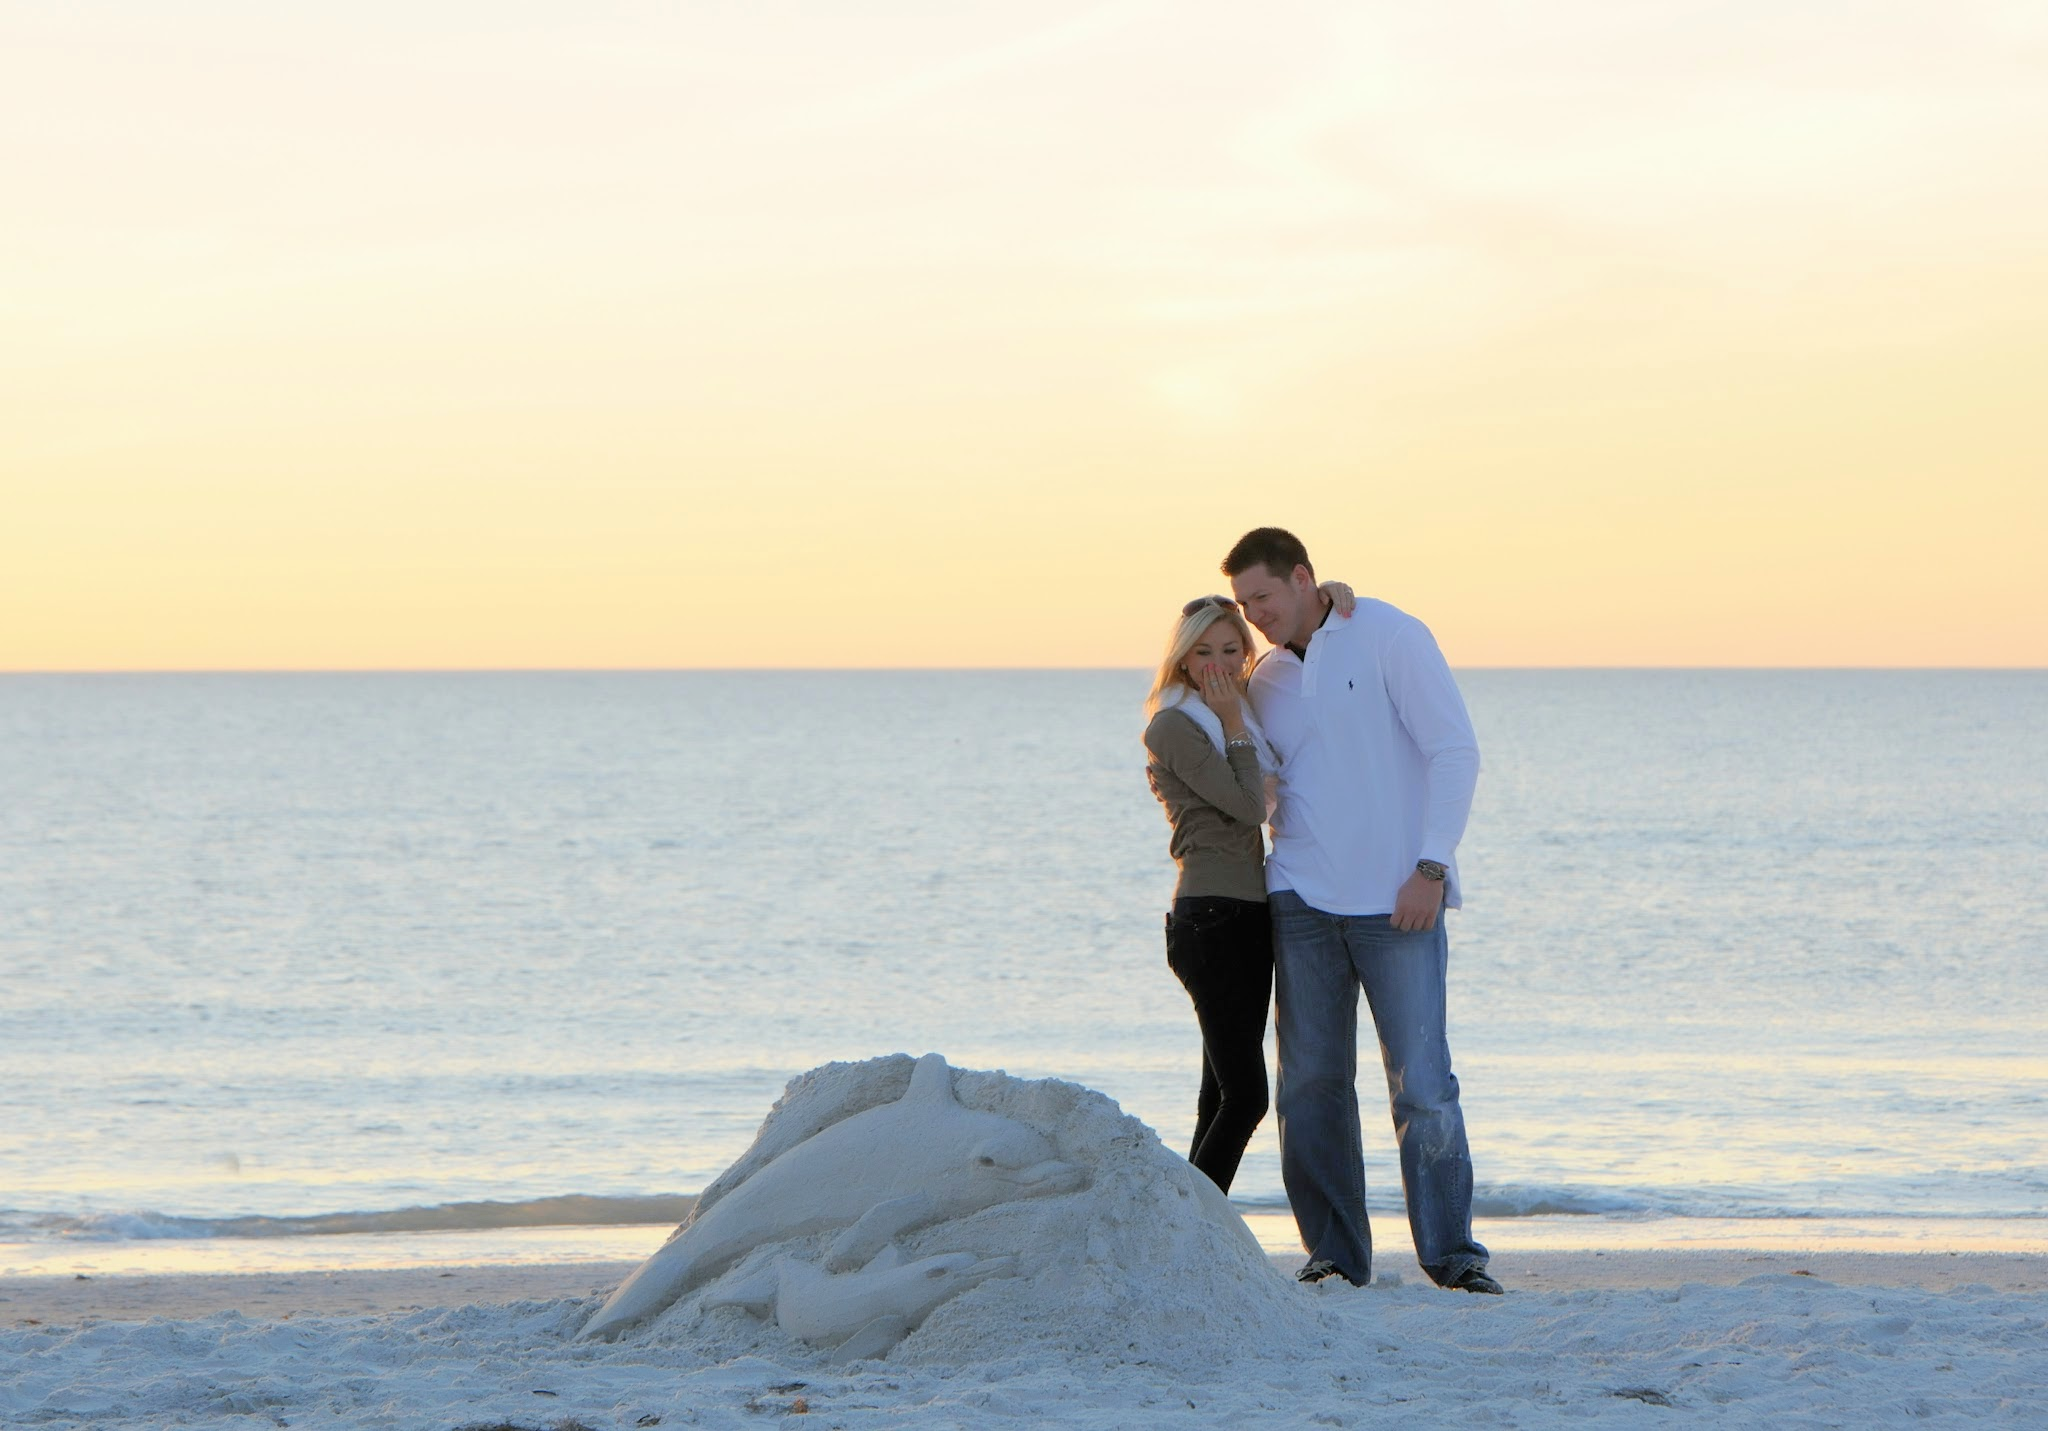 The Pink Palace Proposal | House Full of Summer - A romantic beach proposal at the Don CeSar on St. Pete Beach, Florida,  sand sculpture proposal, beach engagement, sunset proposal on the beach, secret photographer, how he asked, best wedding proposal, creative proposal , must love dogs, dog wedding proposal, dolphin sand sculpture